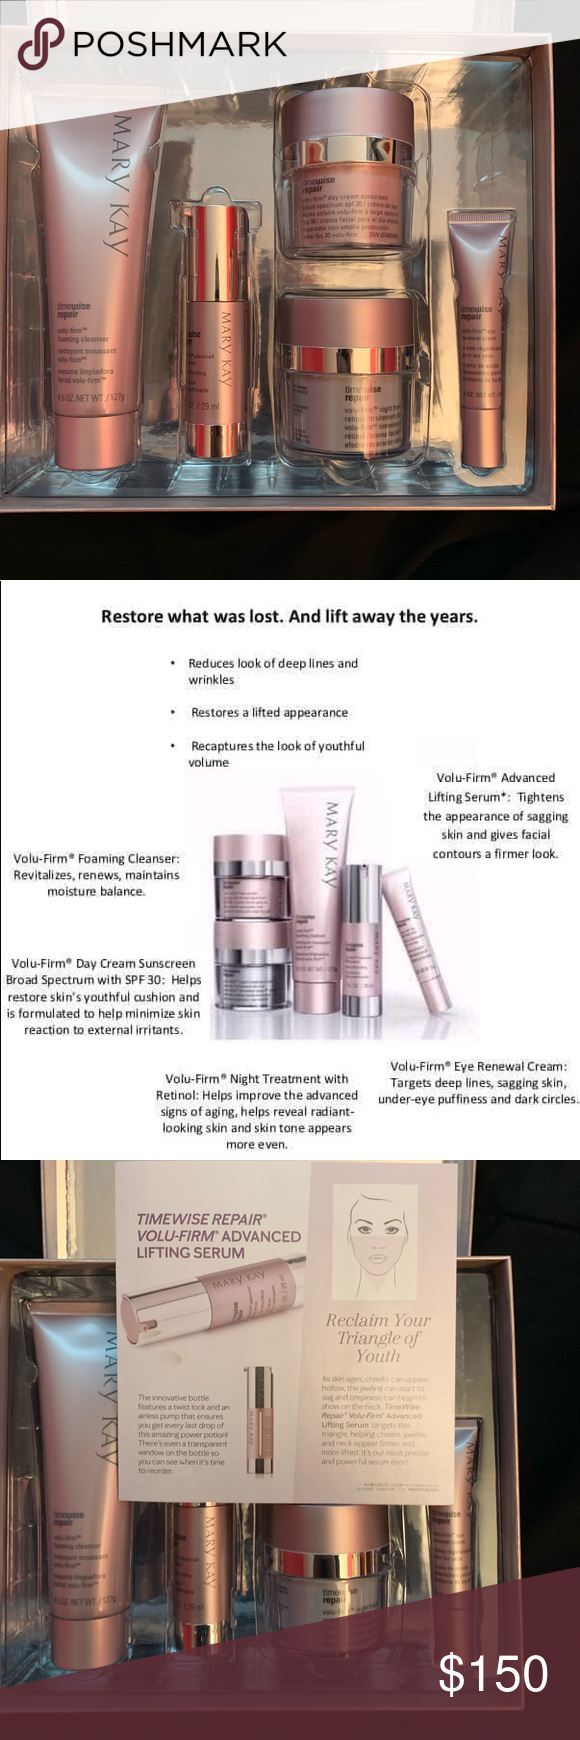 LAST ONE!! NWT Mary Kay Timewise Repair Set Boutique